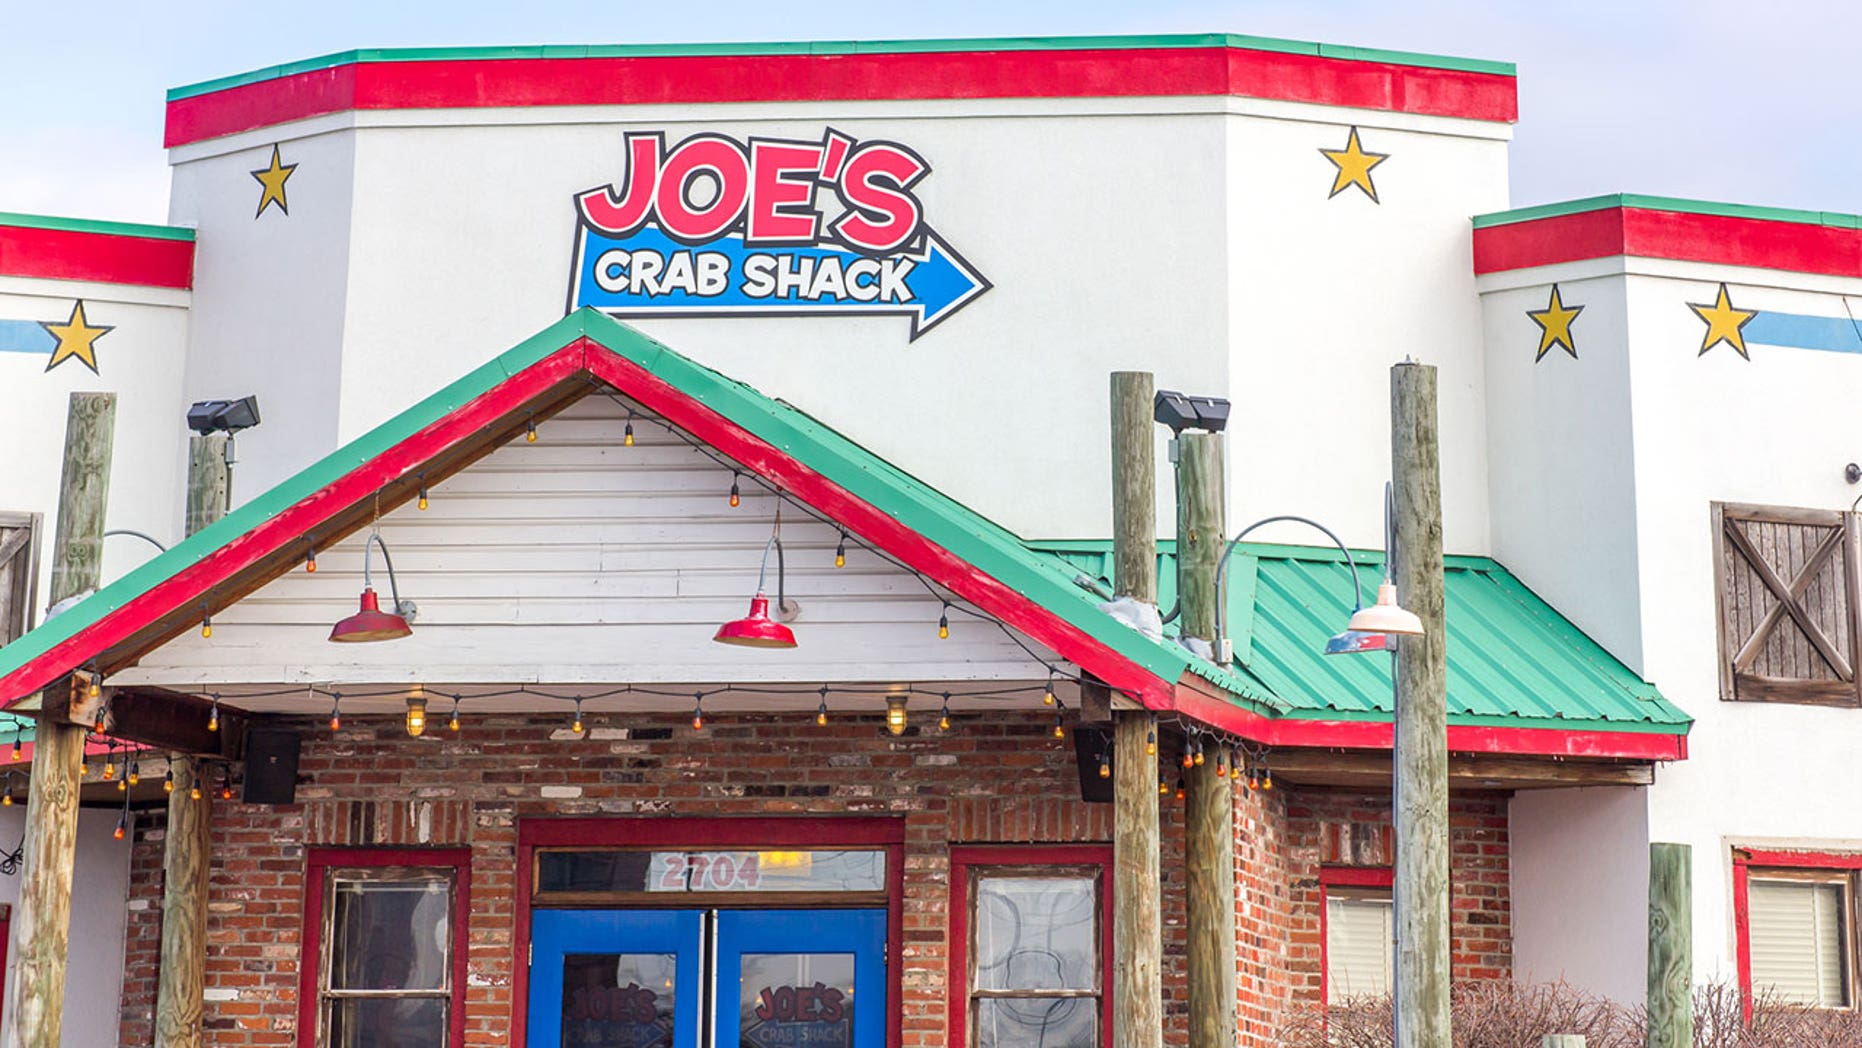 Joe's Crab Shack closes a bunch of restaurants, doesn't warn